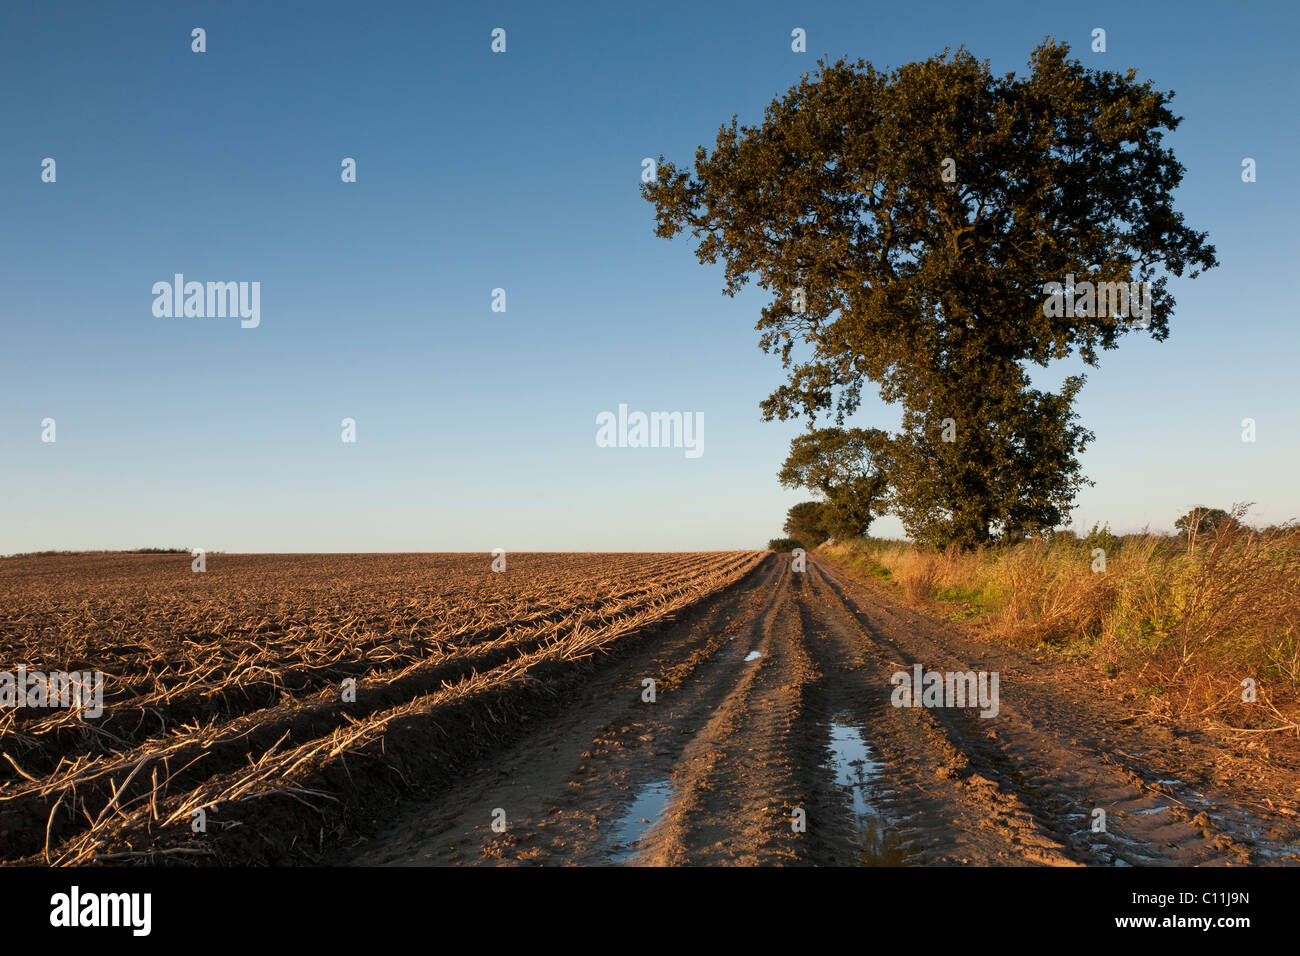 A country track beside a potato field ready to be harvested, with oak trees. - Stock Image